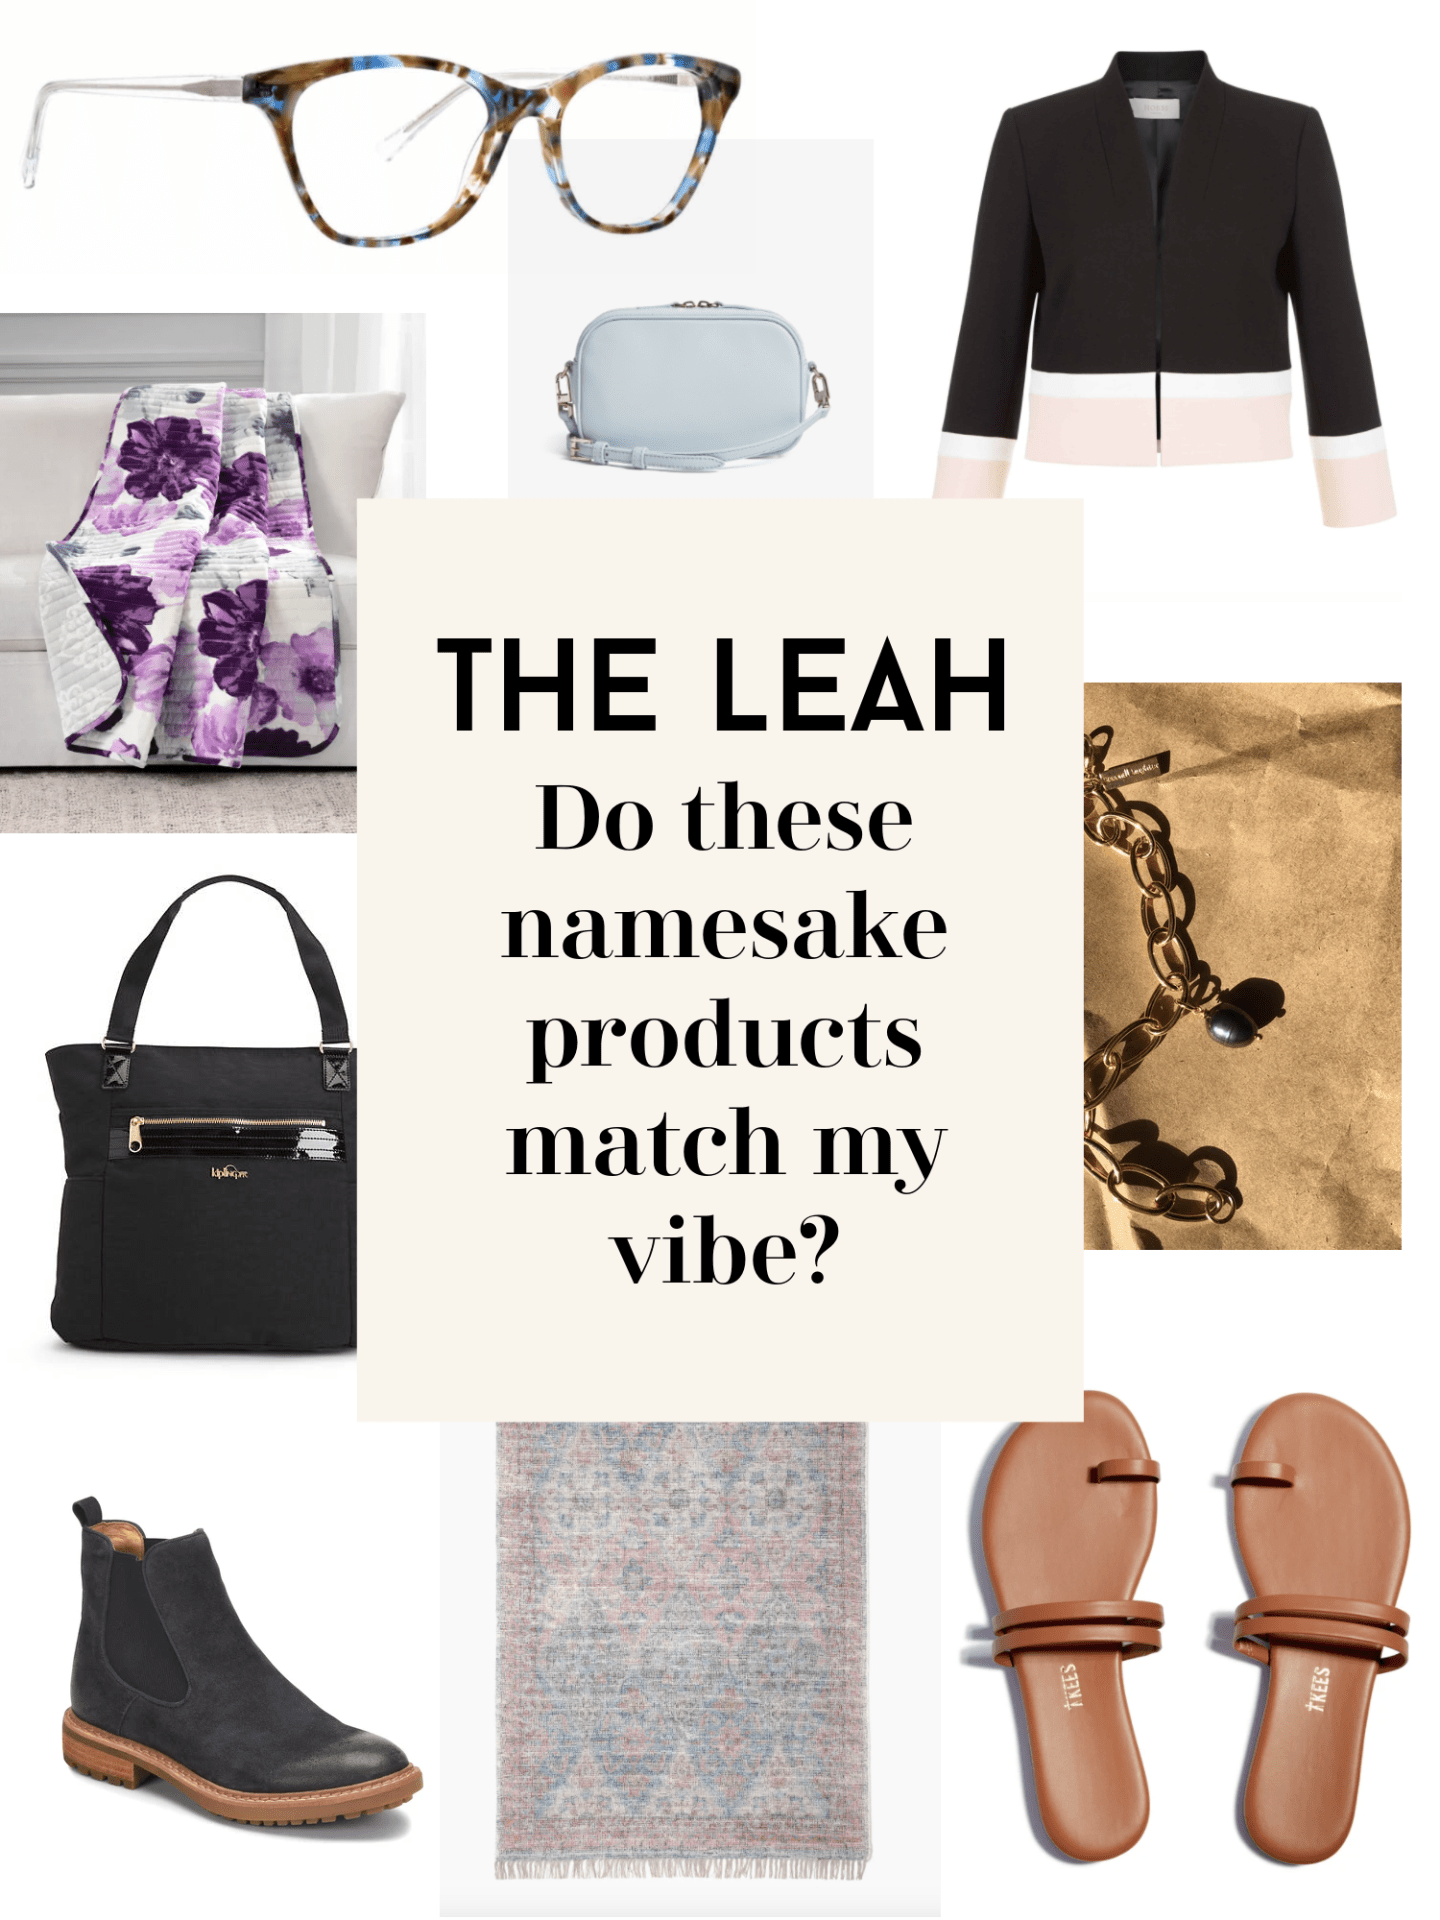 The Leah Products - do these products actually seem like me and match my vibe?